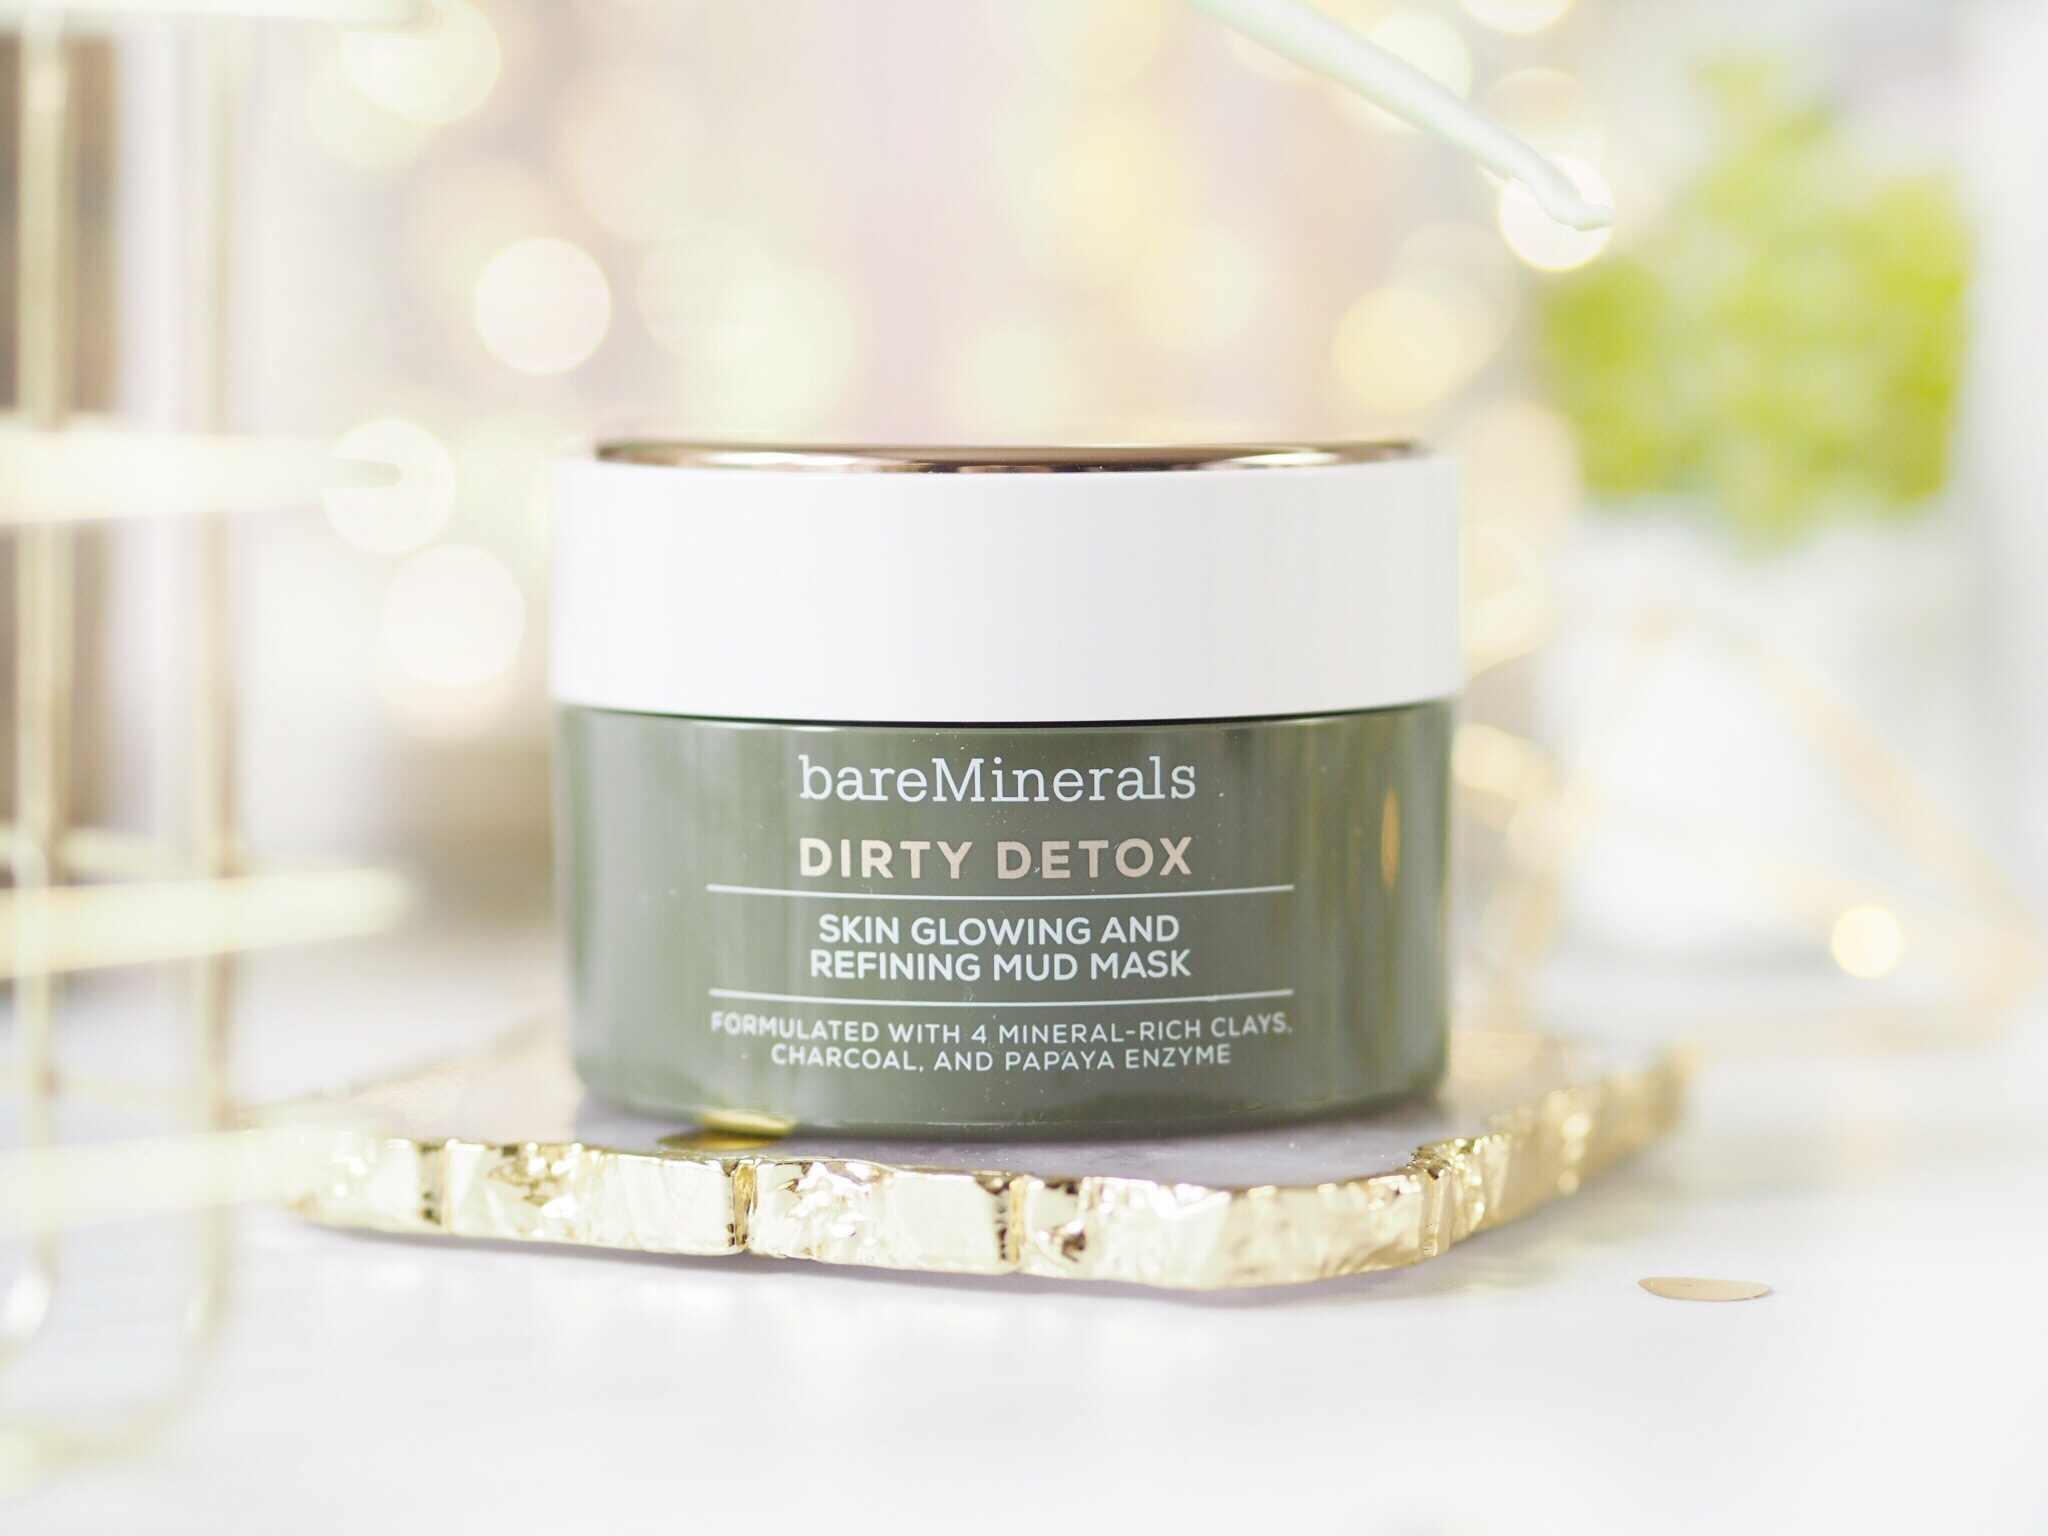 Bare Minerals Dirty Detox Mask